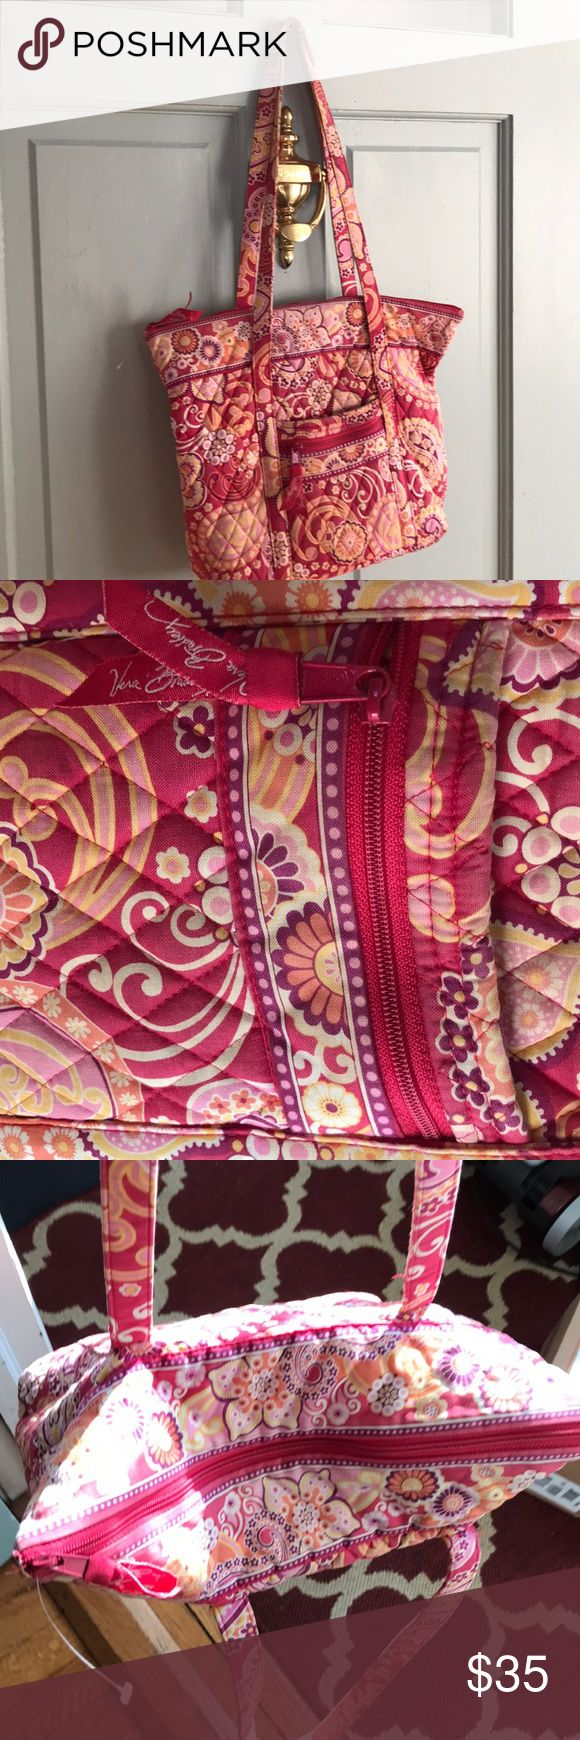 Vera Bradley tote bag Vera Bradley tote bag pretty red pink yellow orange paisley and floral pattern used once for a beach wedding  Clean  Zip closures and included is a small change keyfab Vera Bradley Bags Totes